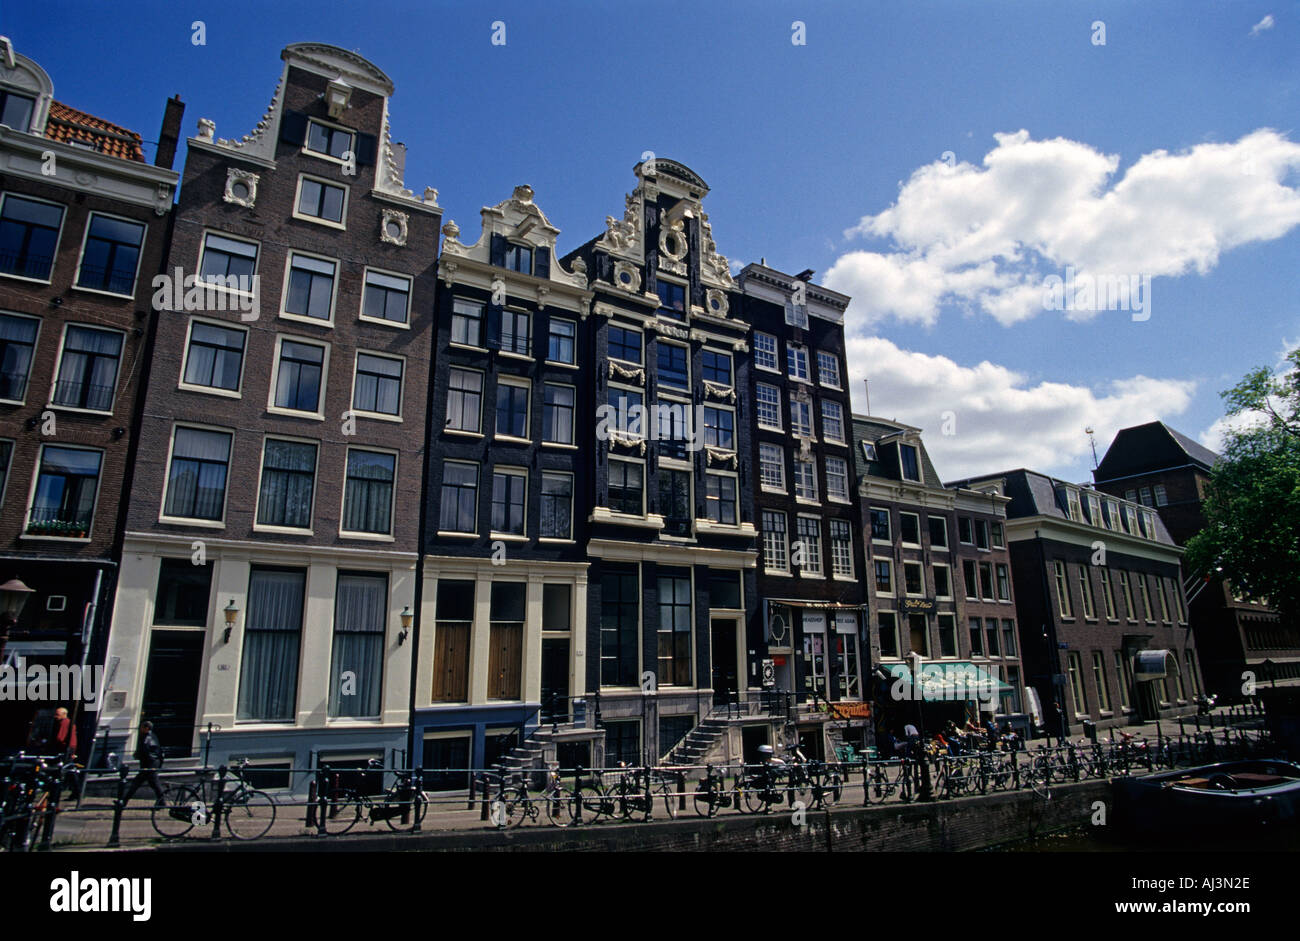 Dutch classicism stockfotos dutch classicism bilder alamy - Architektur amsterdam ...